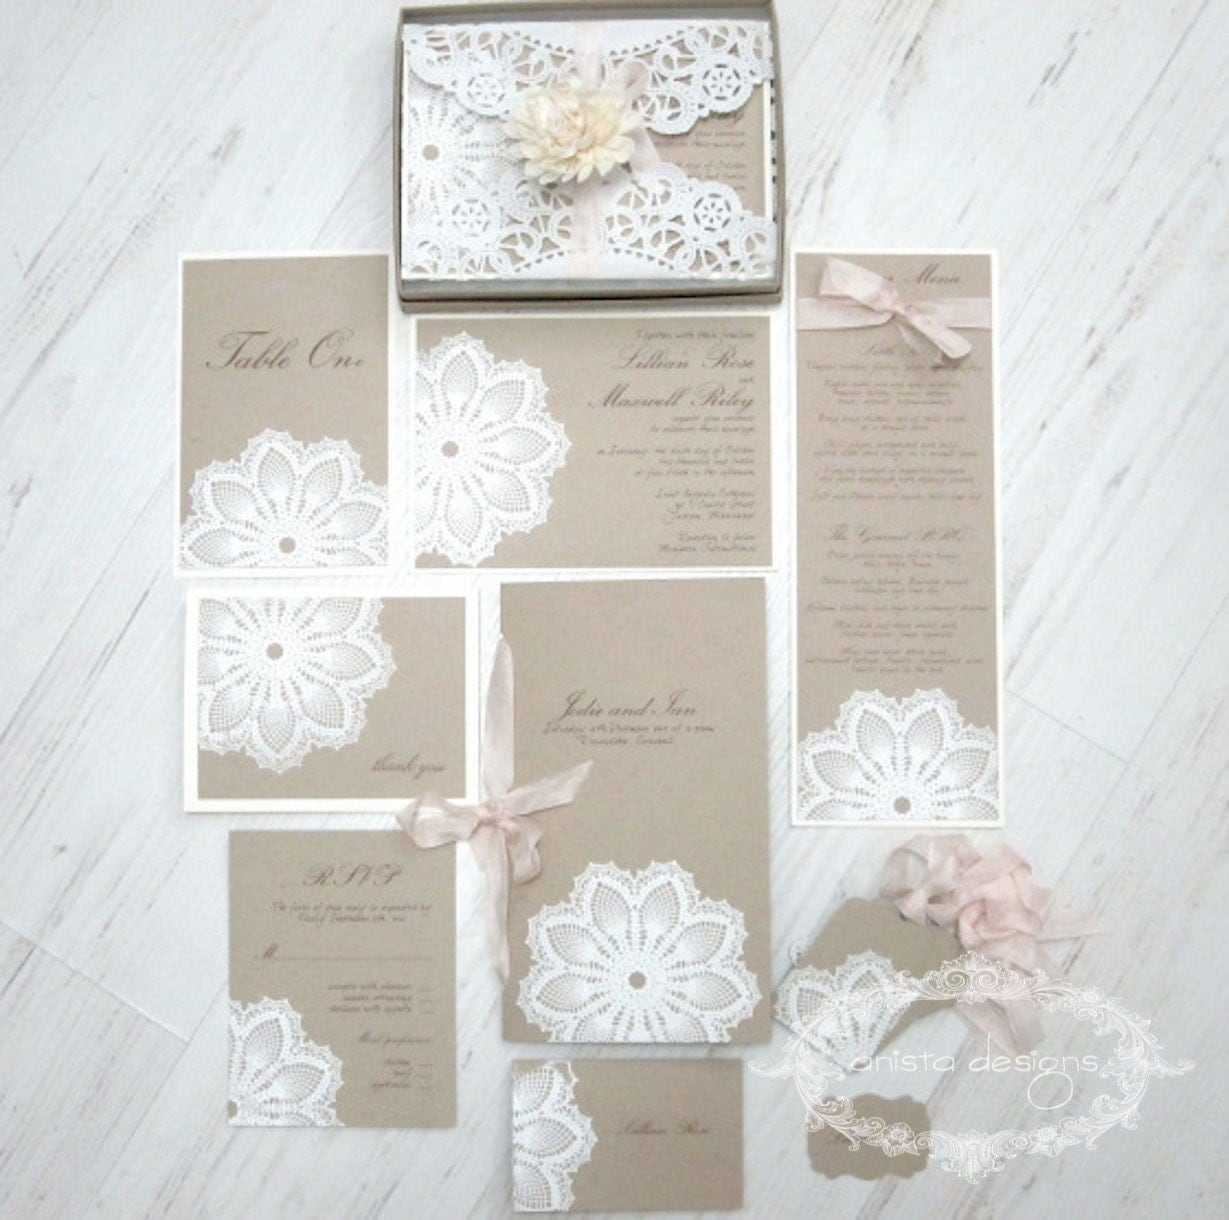 Crochet Wedding Invitations: SALE: Vintage Lace Wedding Invitation Lace Doily Featured